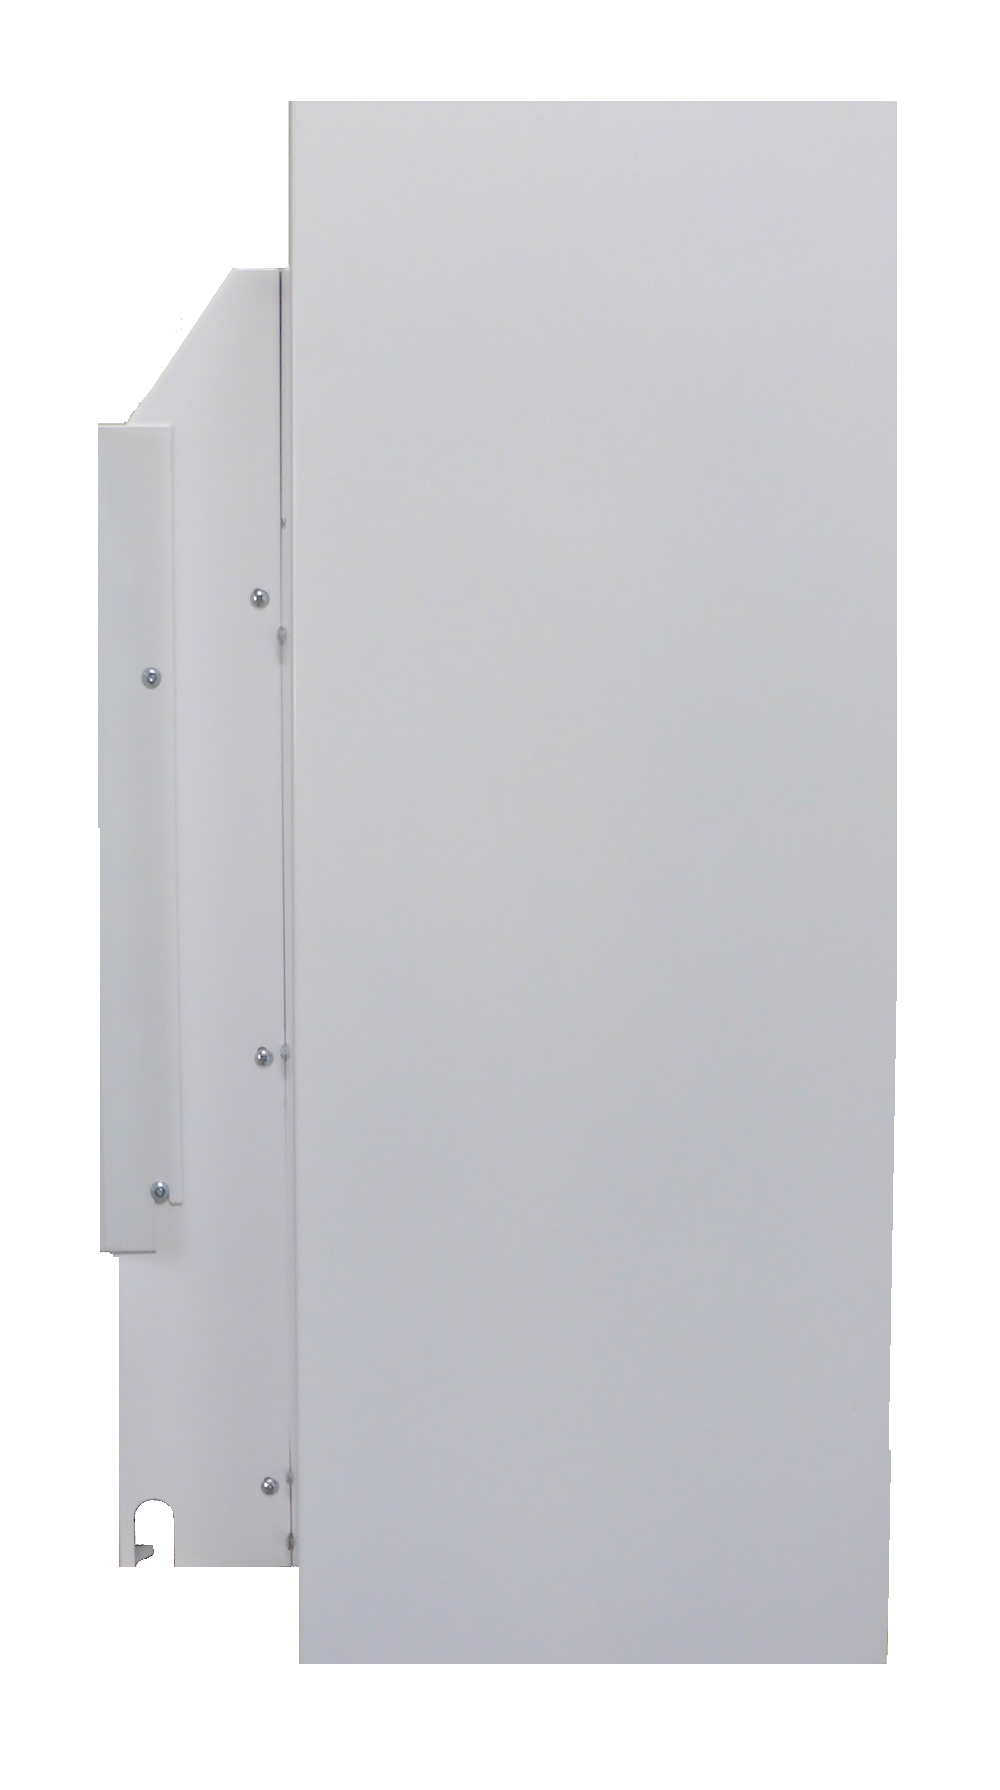 D1100 side view dehumidifiers by Ecor Pro